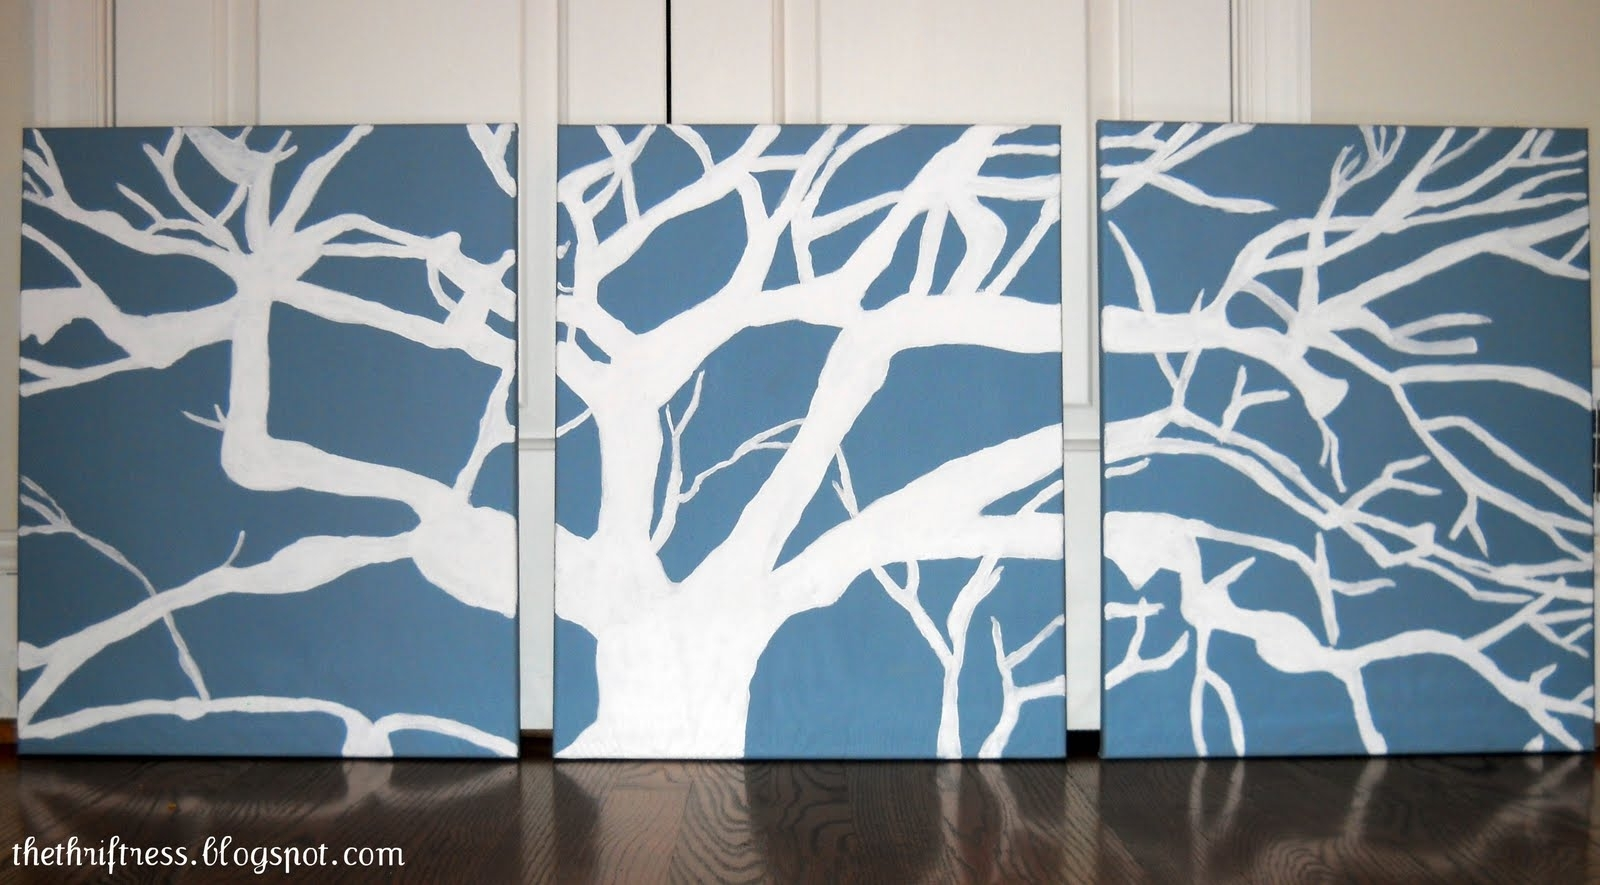 Diy Wall Art Stencils Paint Fabric – Dma Homes | #37854 Throughout Current Modern Fabric Wall Art (View 12 of 15)